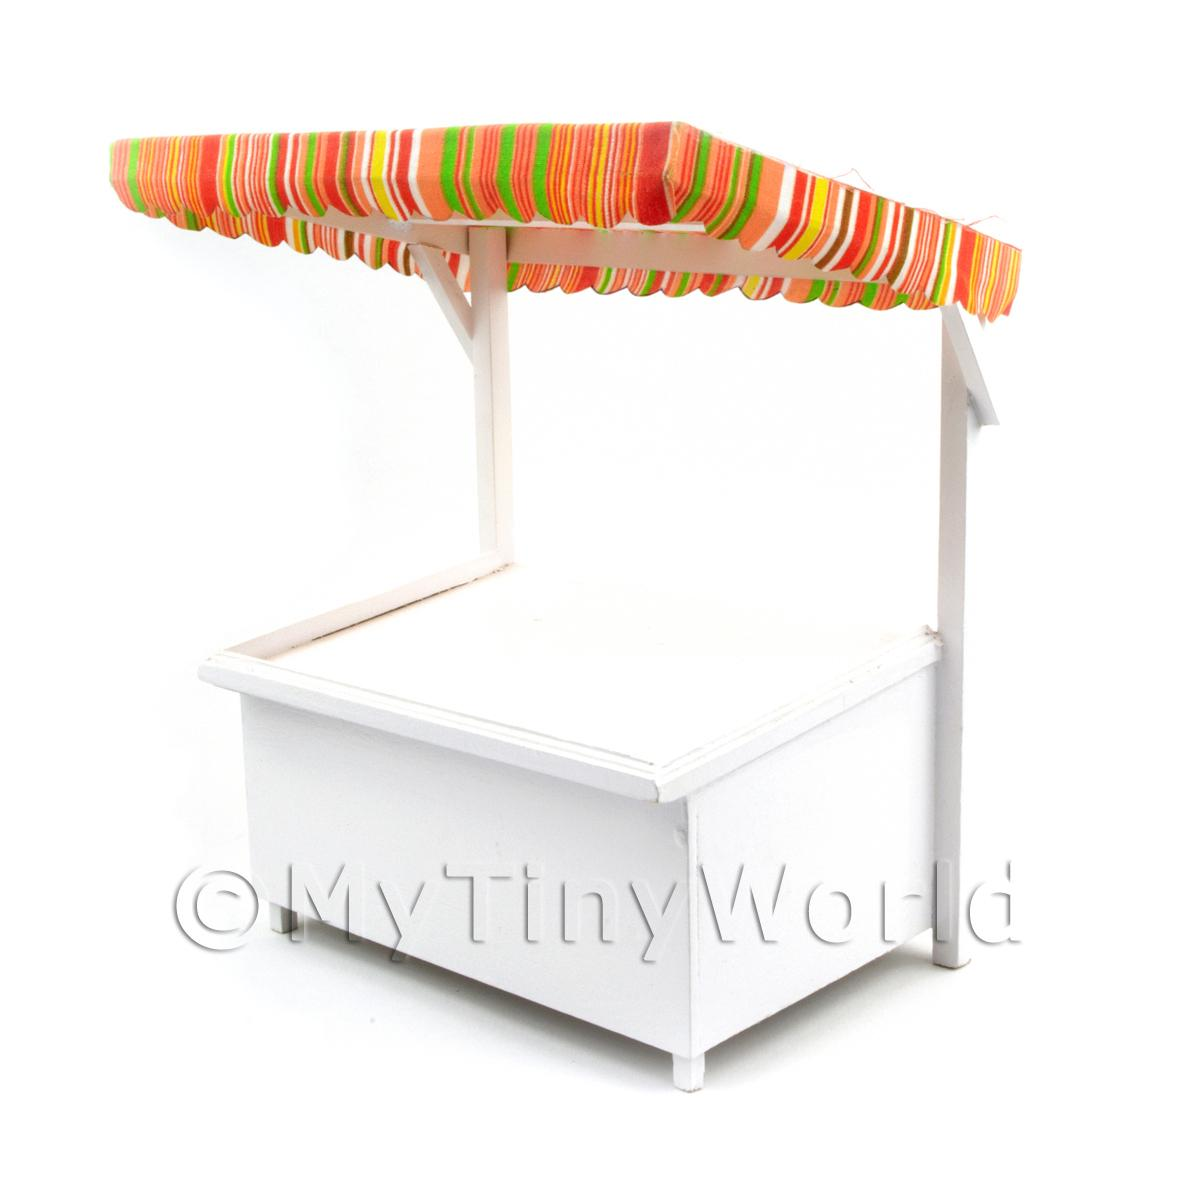 Miniature Large Wood Market Stall With Orange Stripey Cloth Canopy